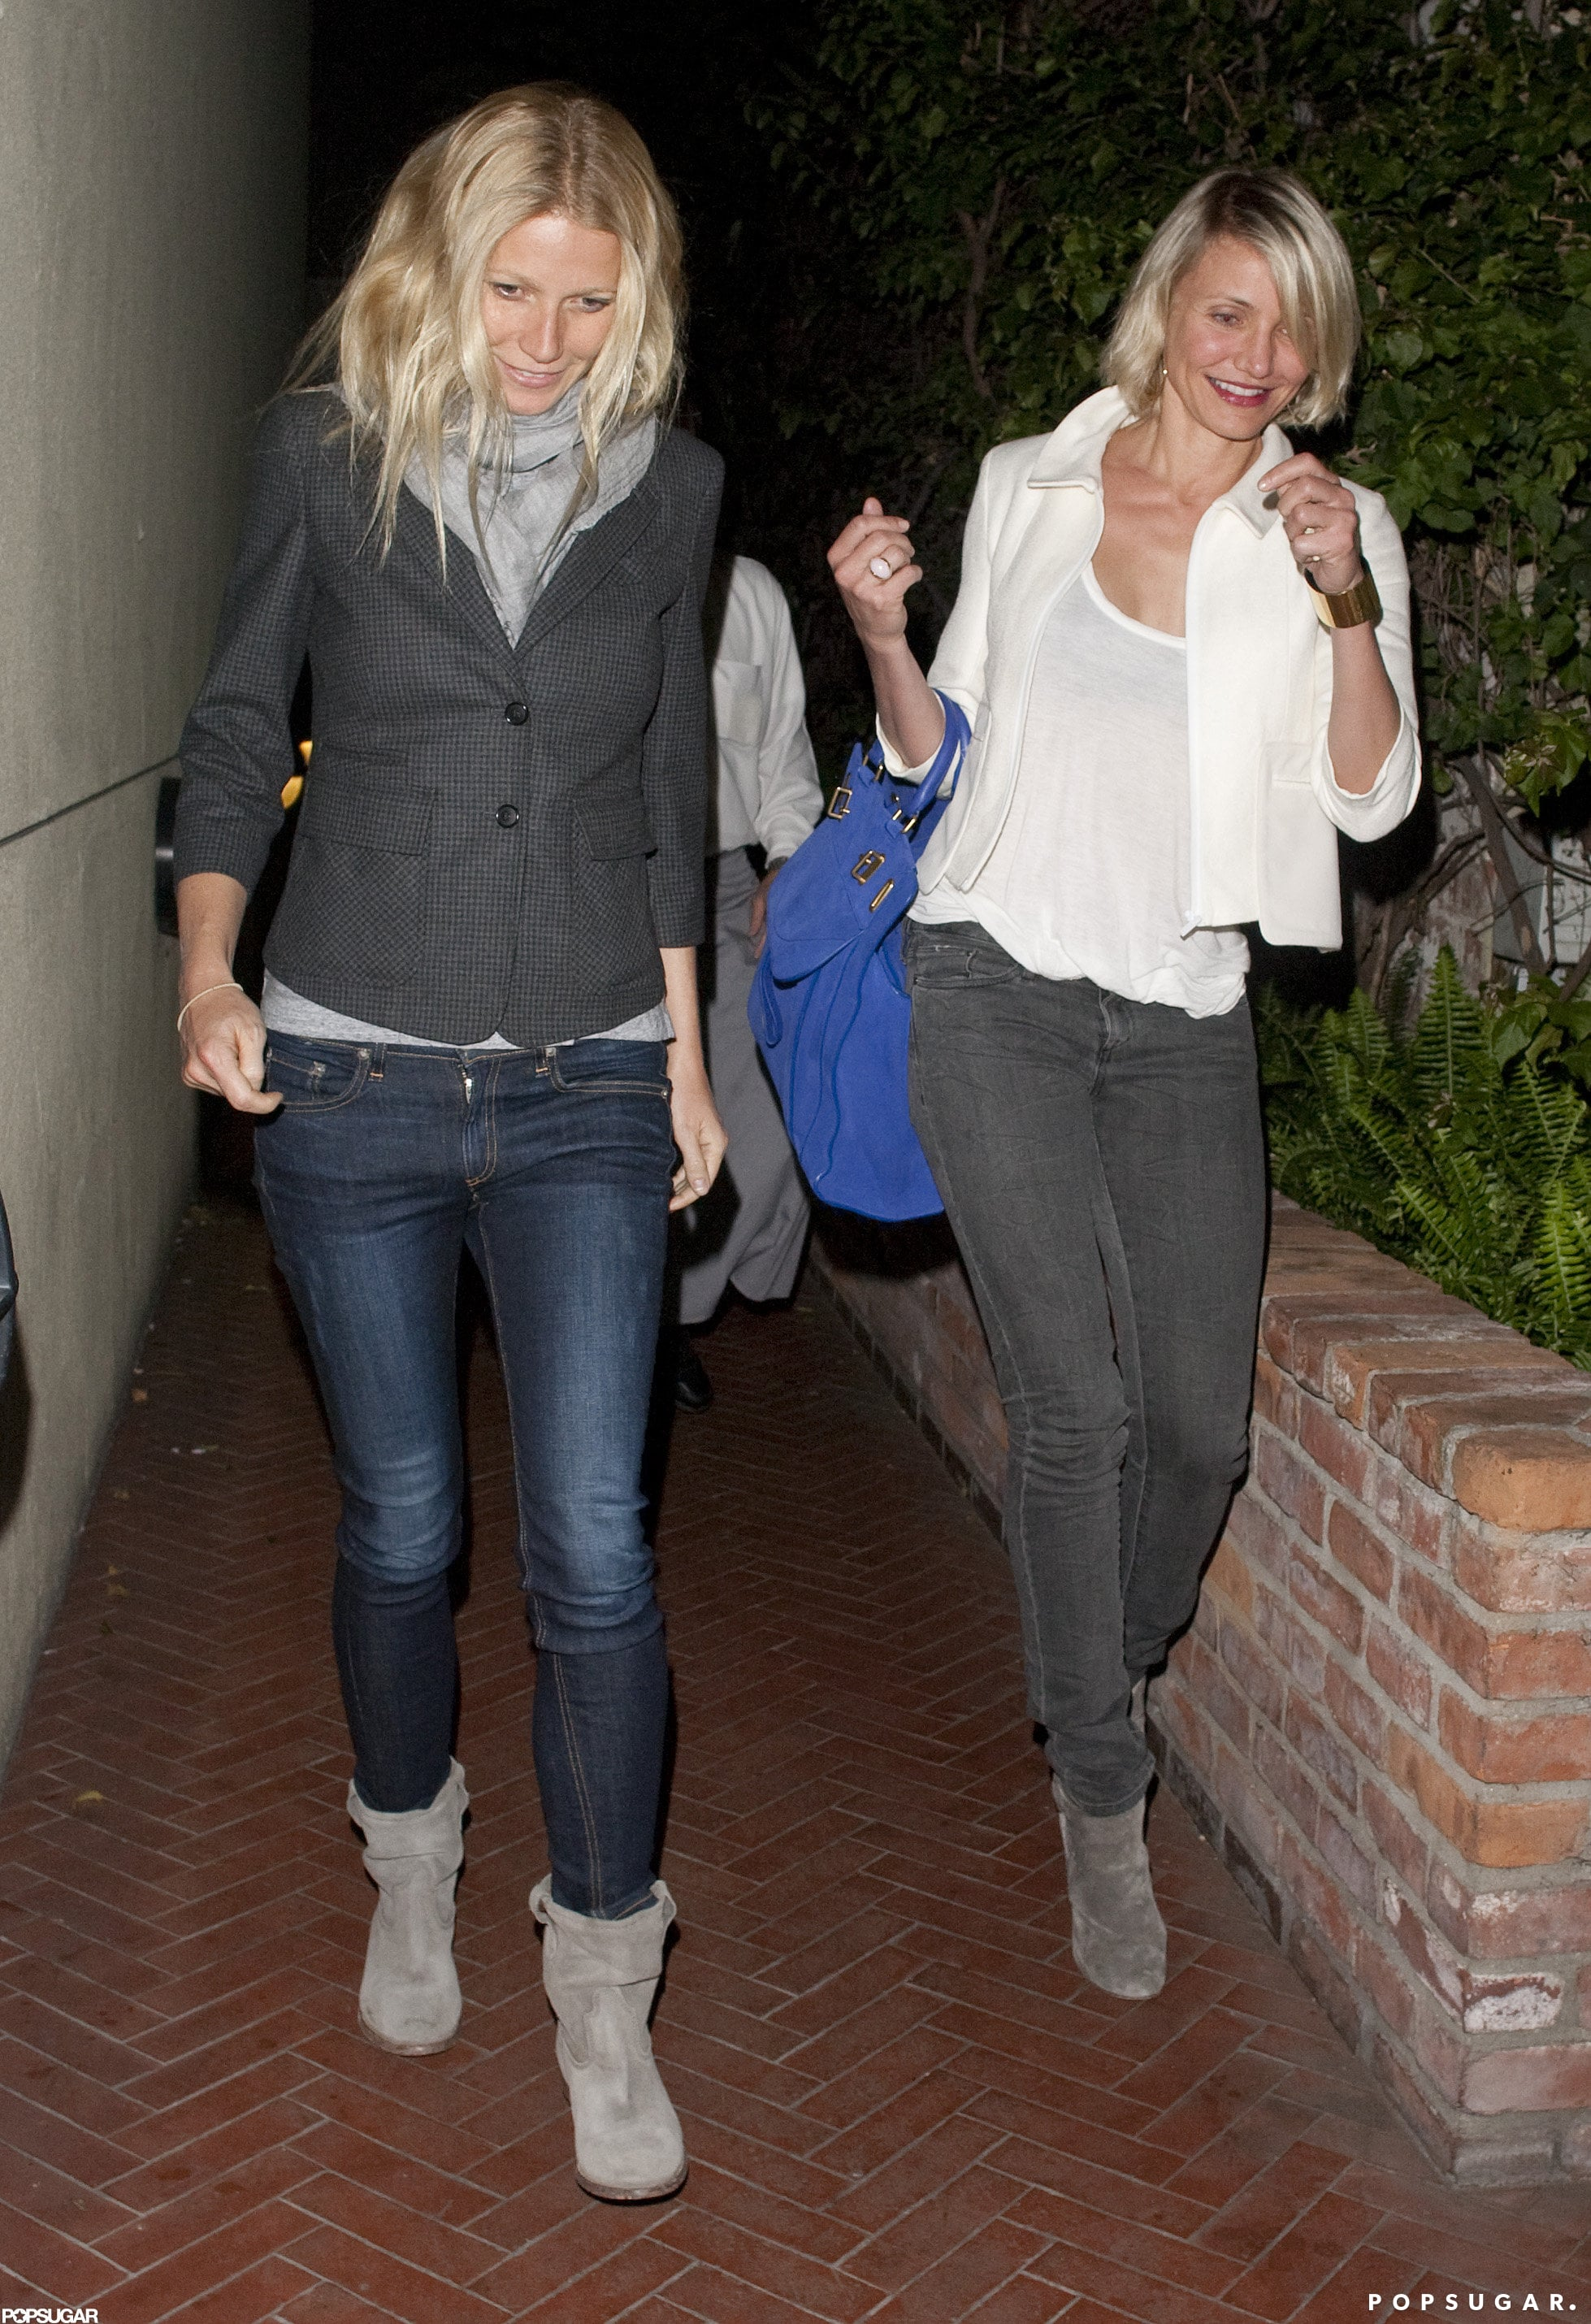 Cameron Diaz and Gwyneth Paltrow after dinner in LA.